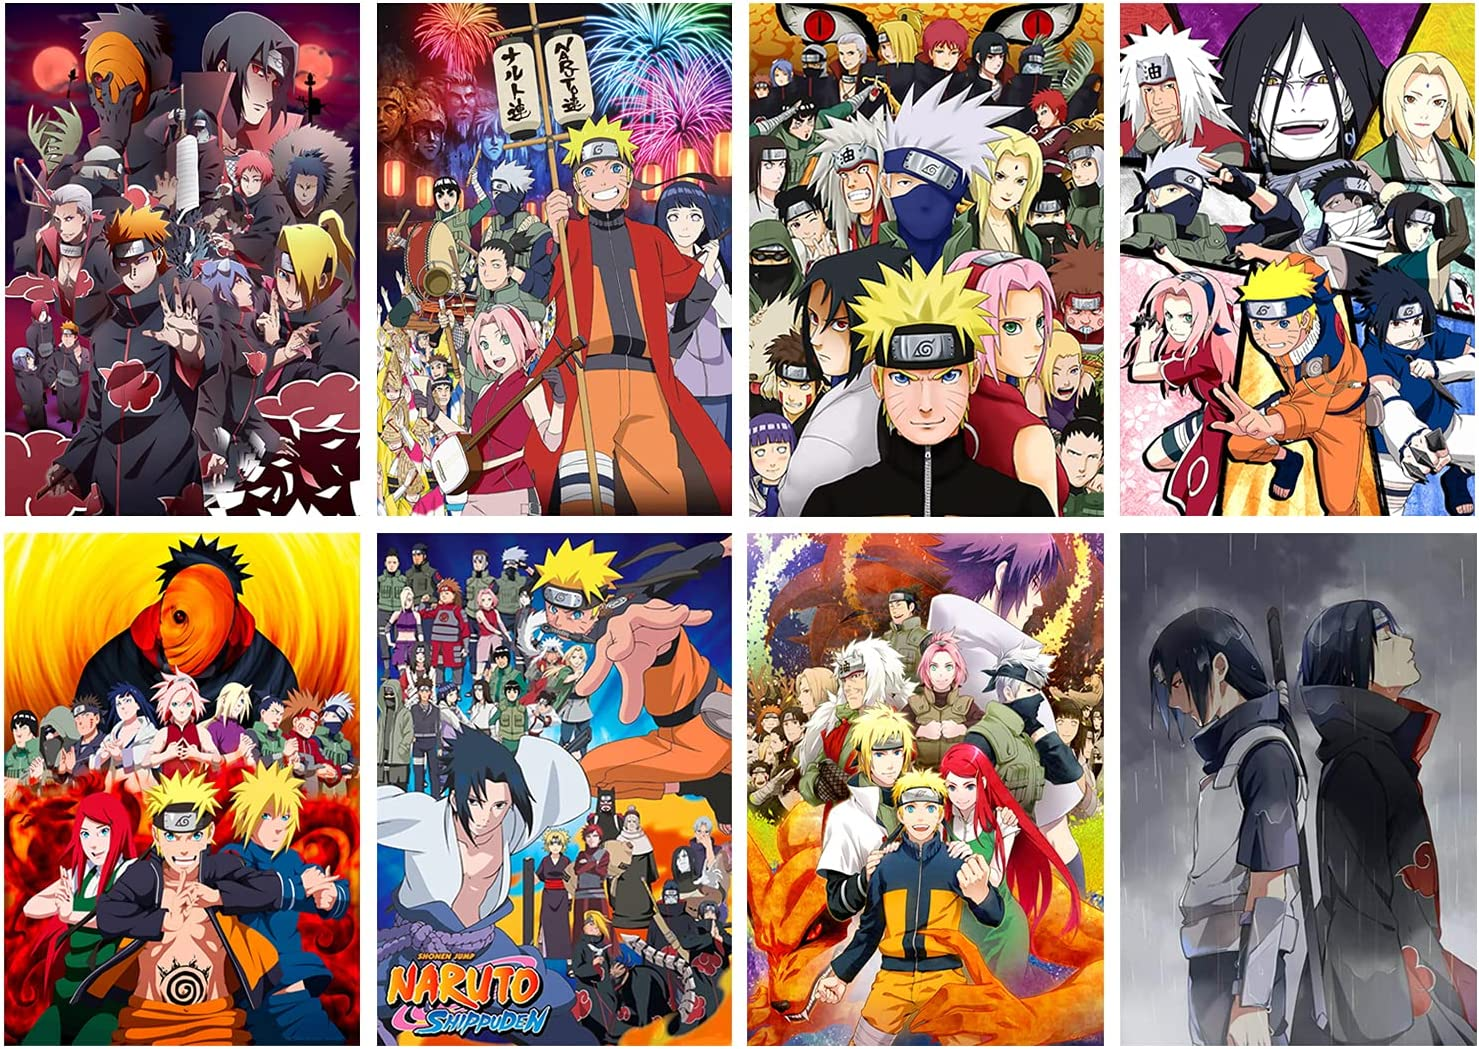 8PCS Anime Uch-iha Sas-uke Ita-chi Cool Posters Wall Art Painting For Home Room Decorations Wall Decor 11.5x16.5 Inches